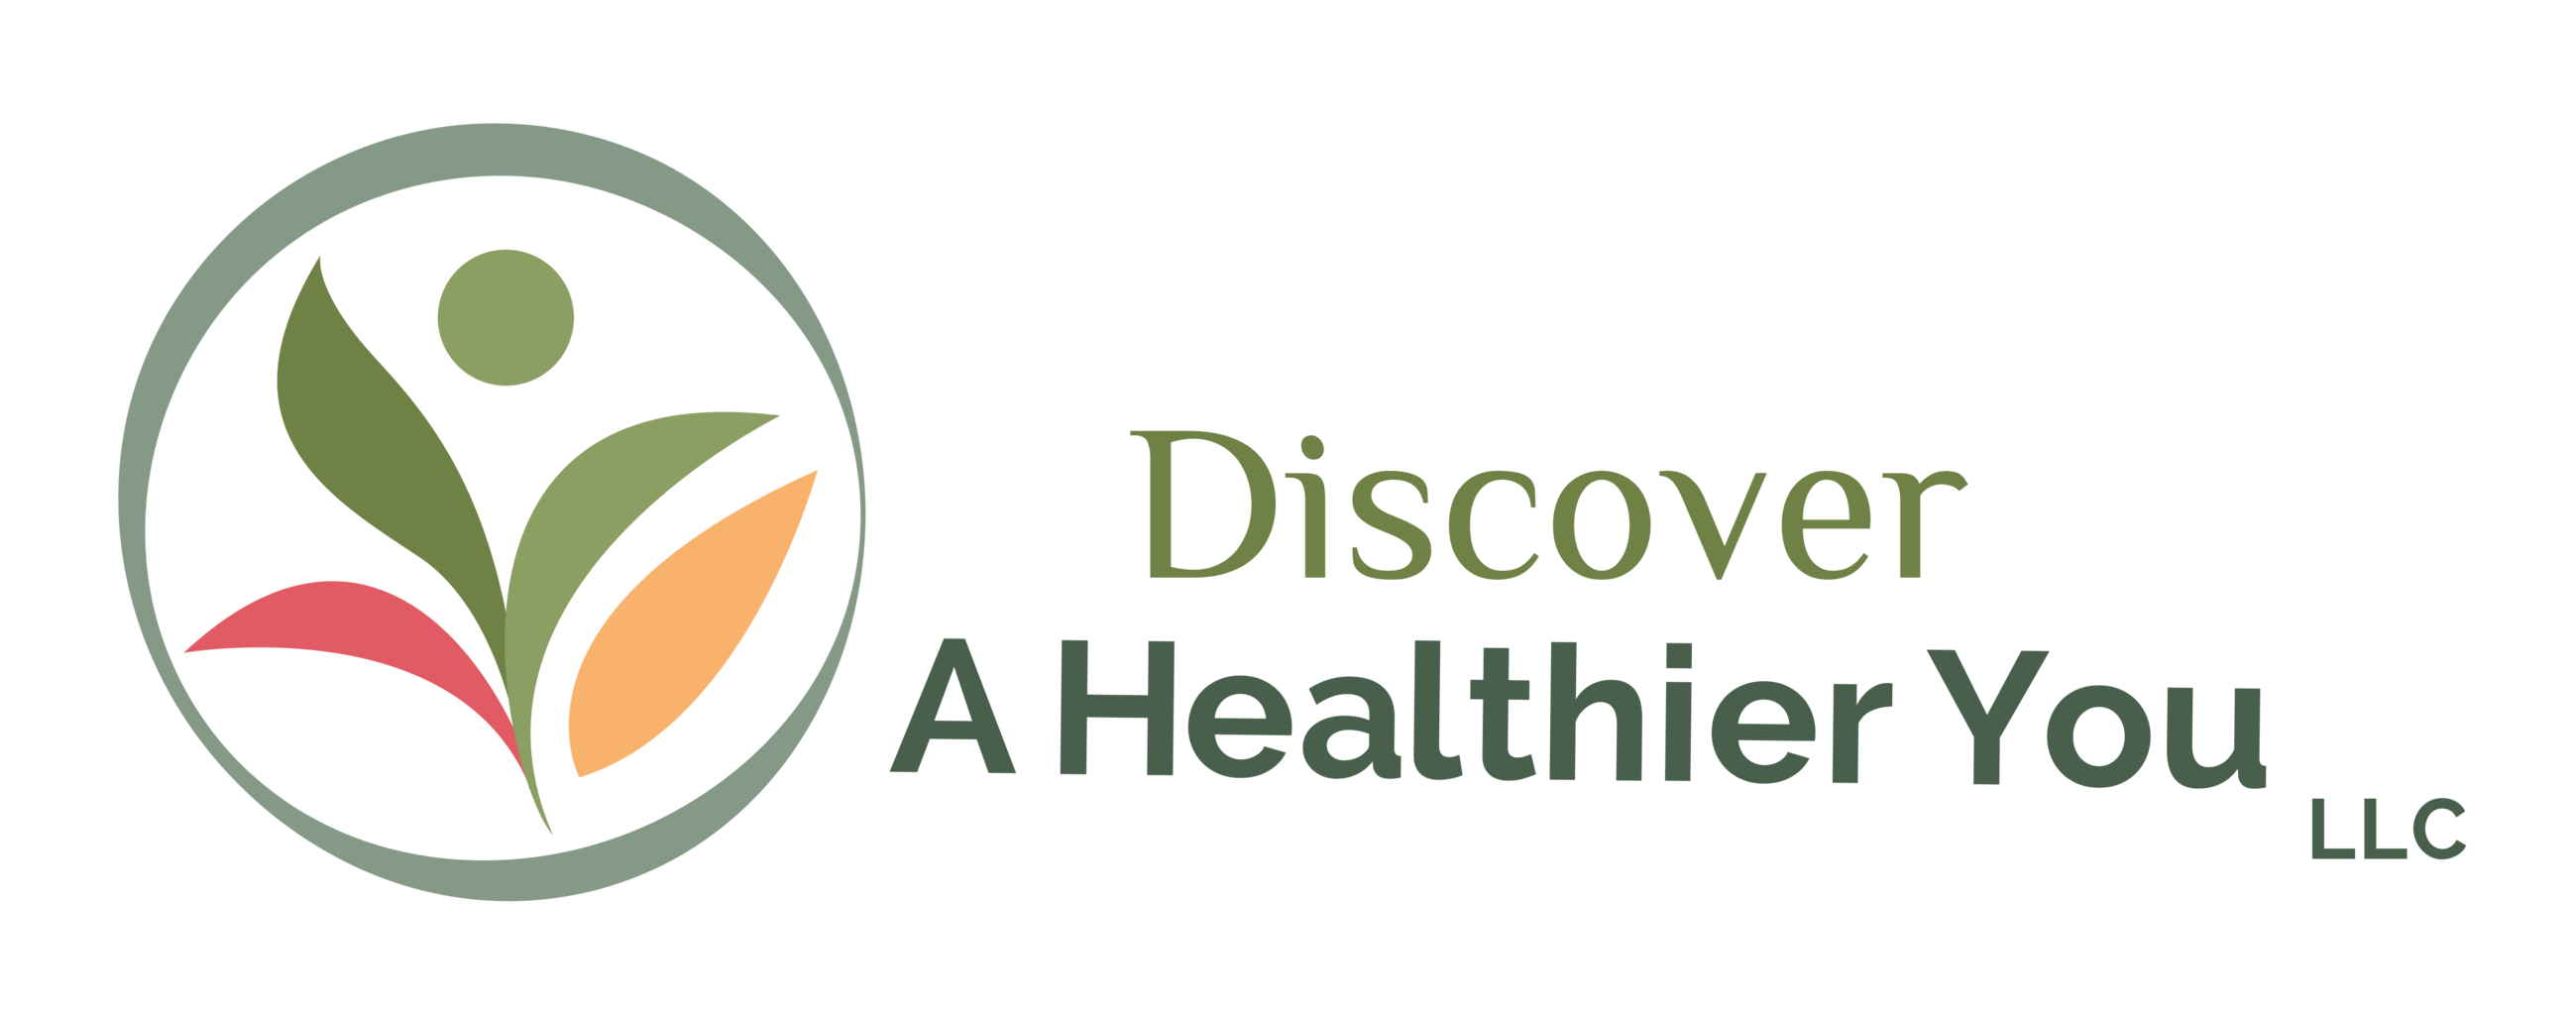 Discover a Healthier You